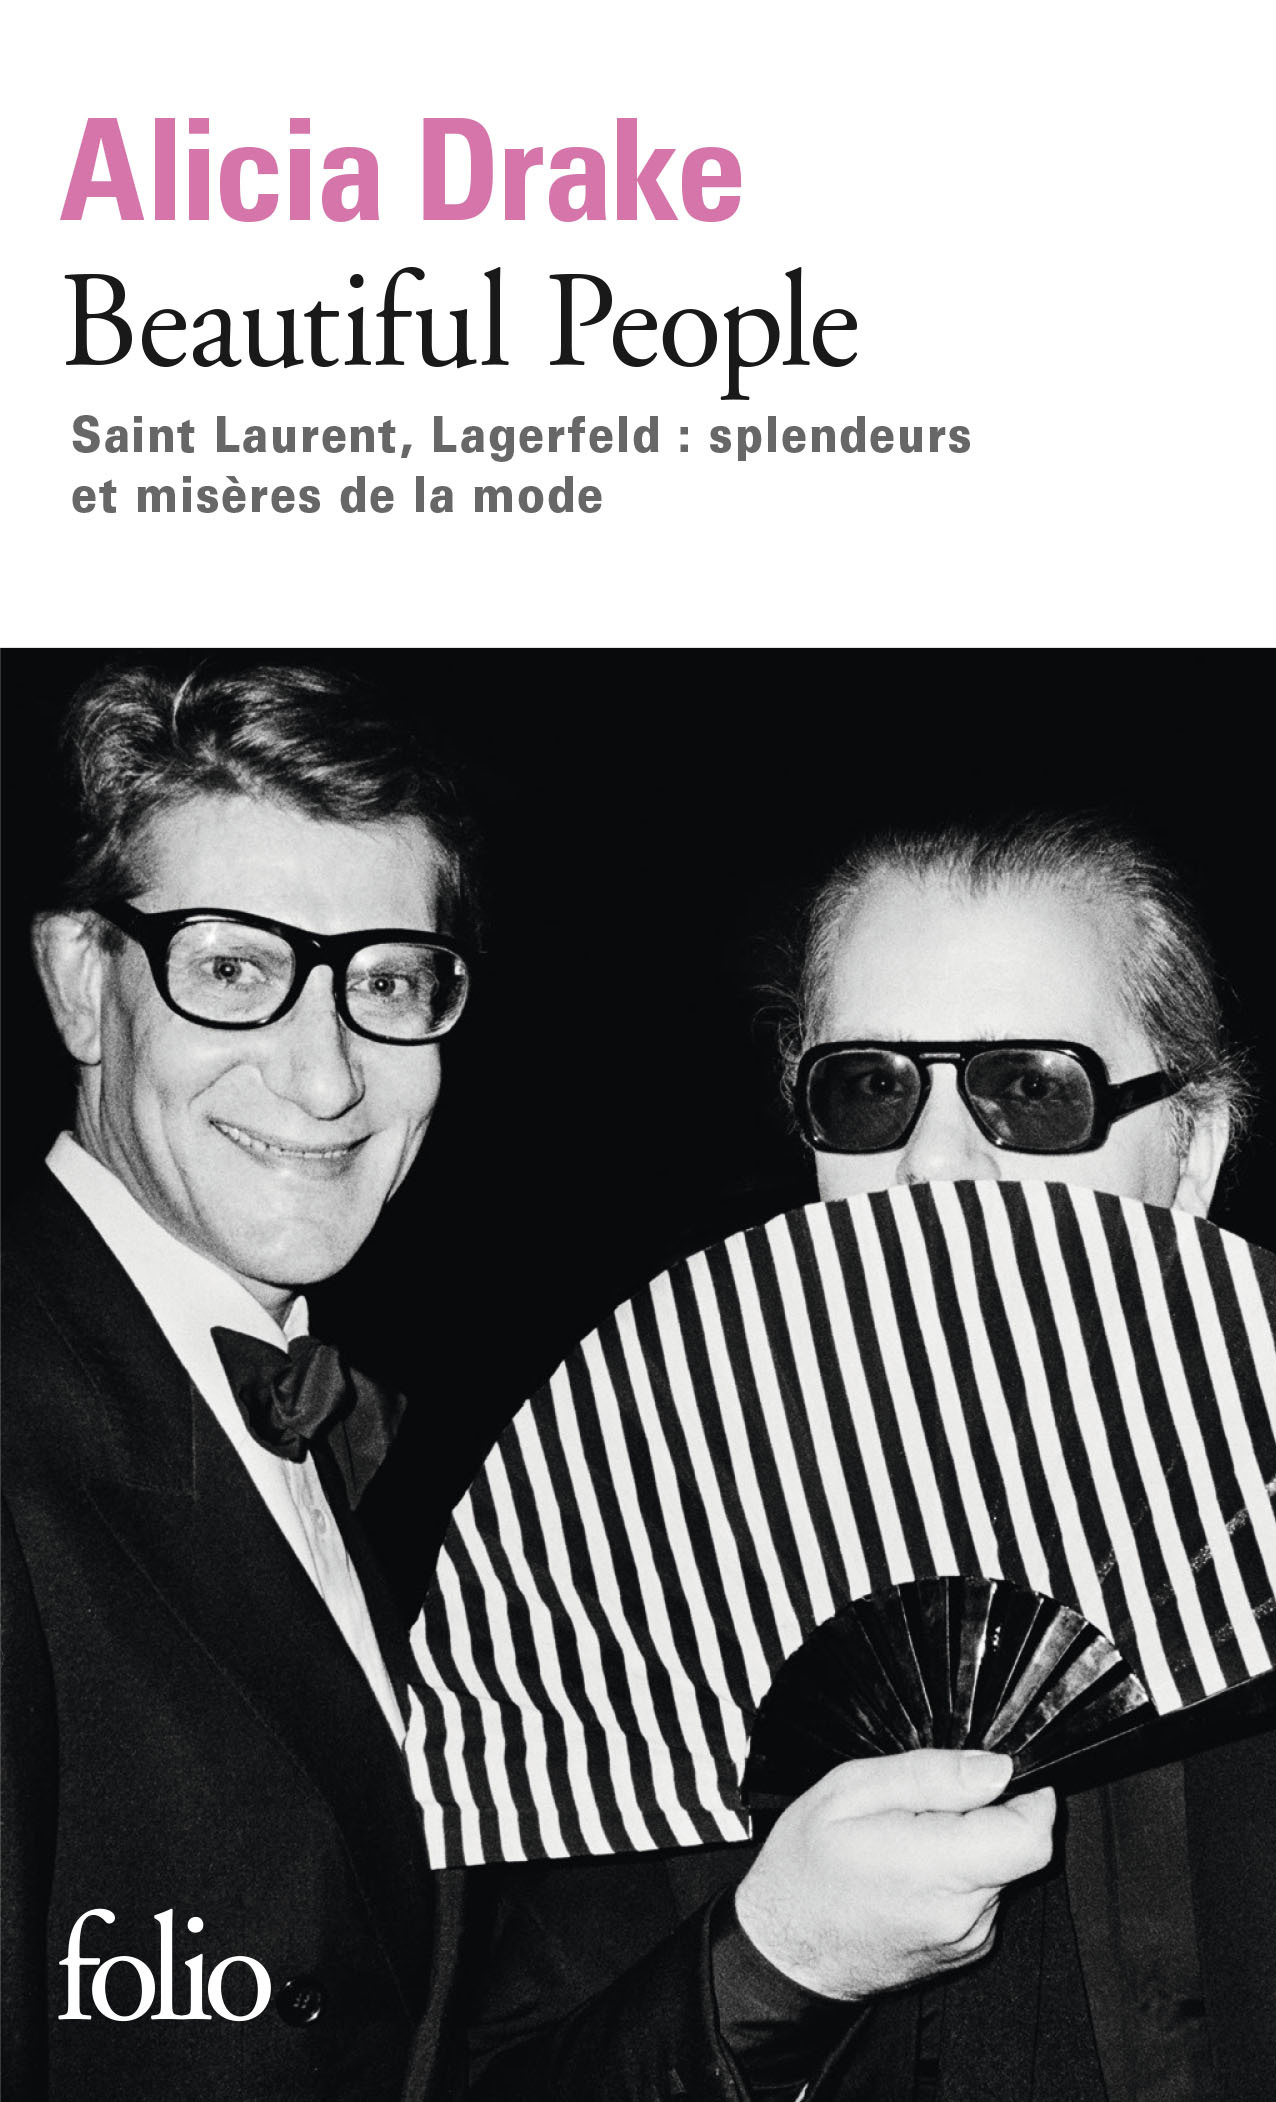 BEAUTIFUL PEOPLE (SAINT LAURENT, LAGERFELD : SPLENDEURS ET MISE